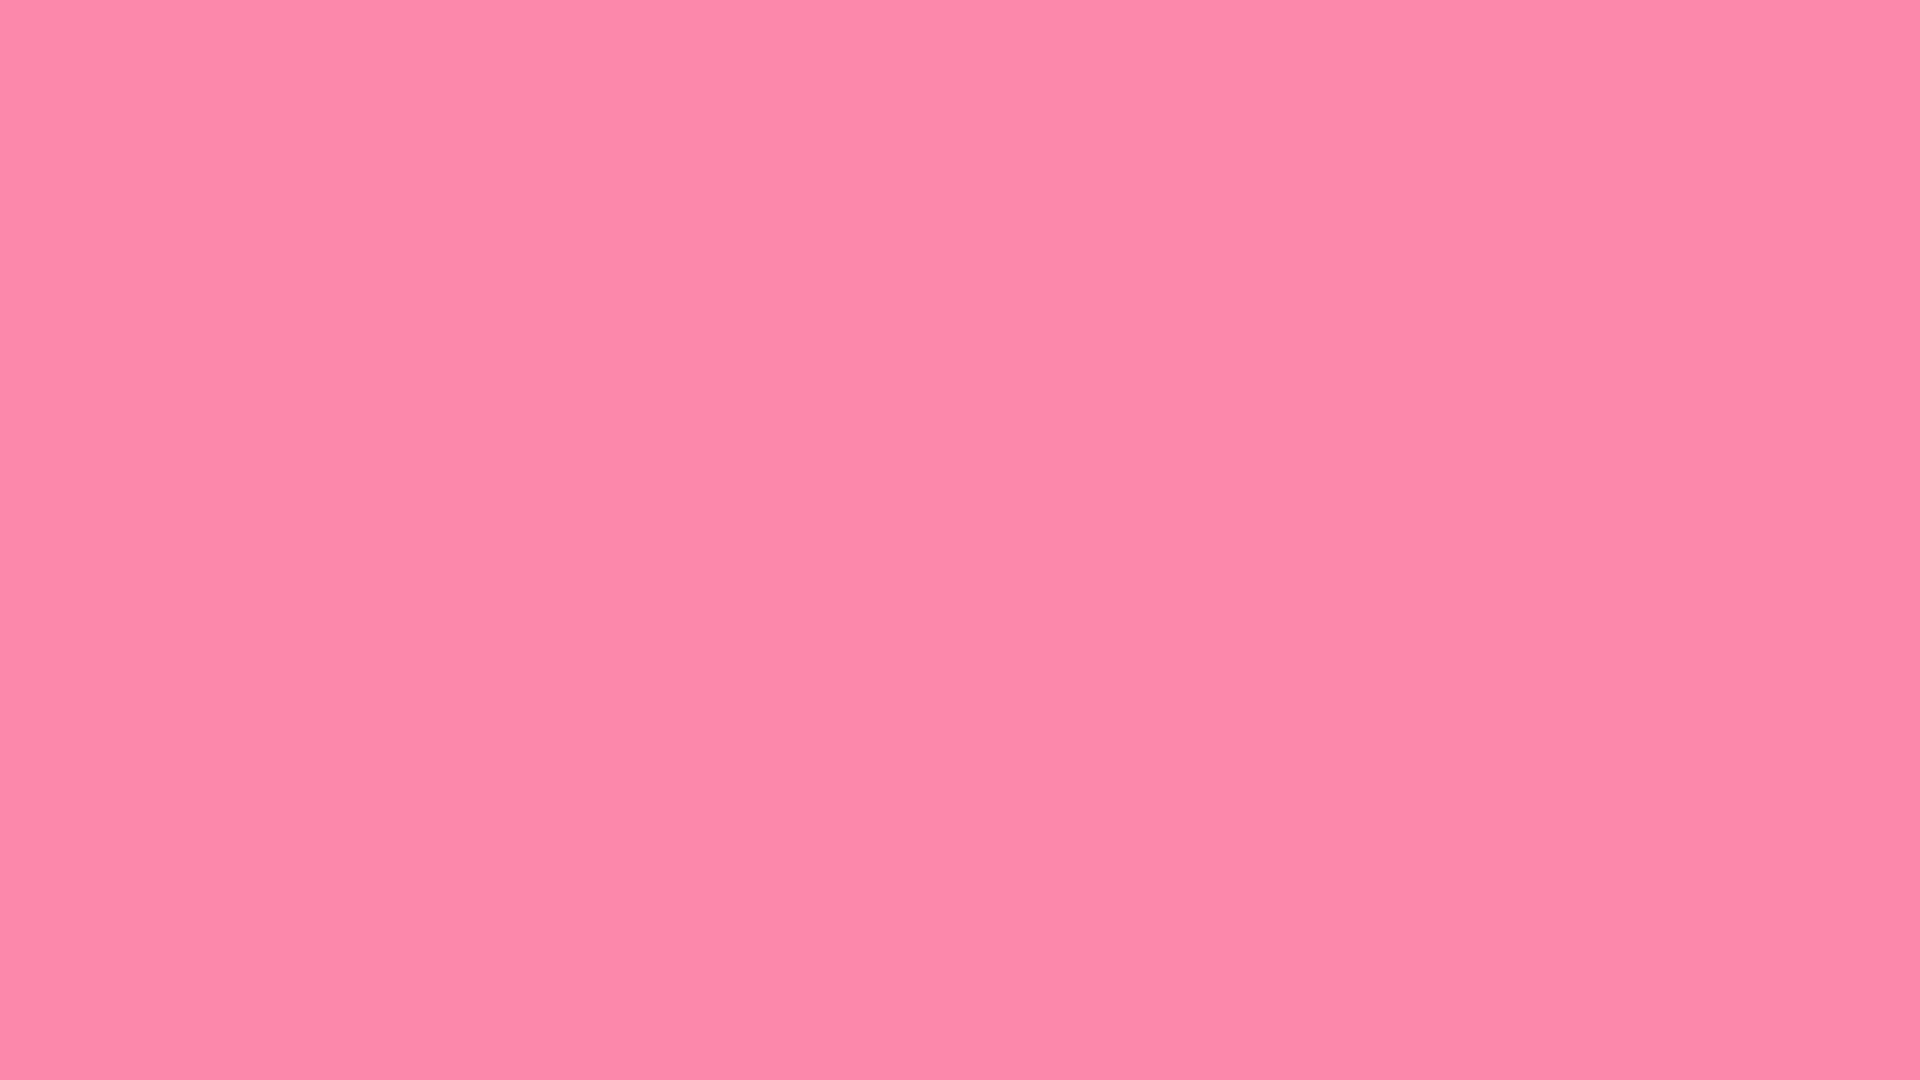 1920x1080 Tickle Me Pink Solid Color Background